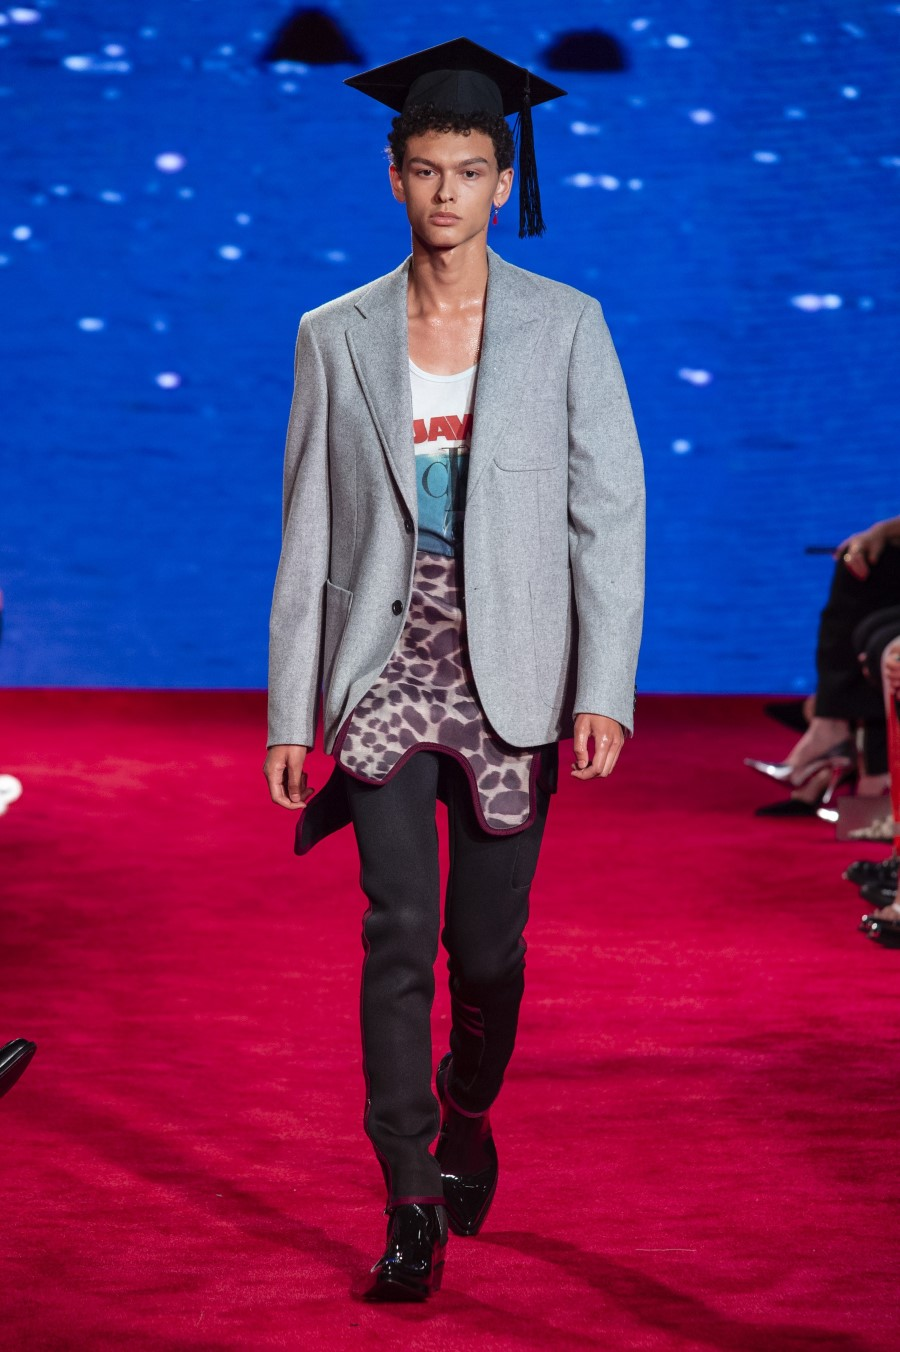 Calvin Klein 205W39NYC Spring Summer 2019 - New York Fashion Week